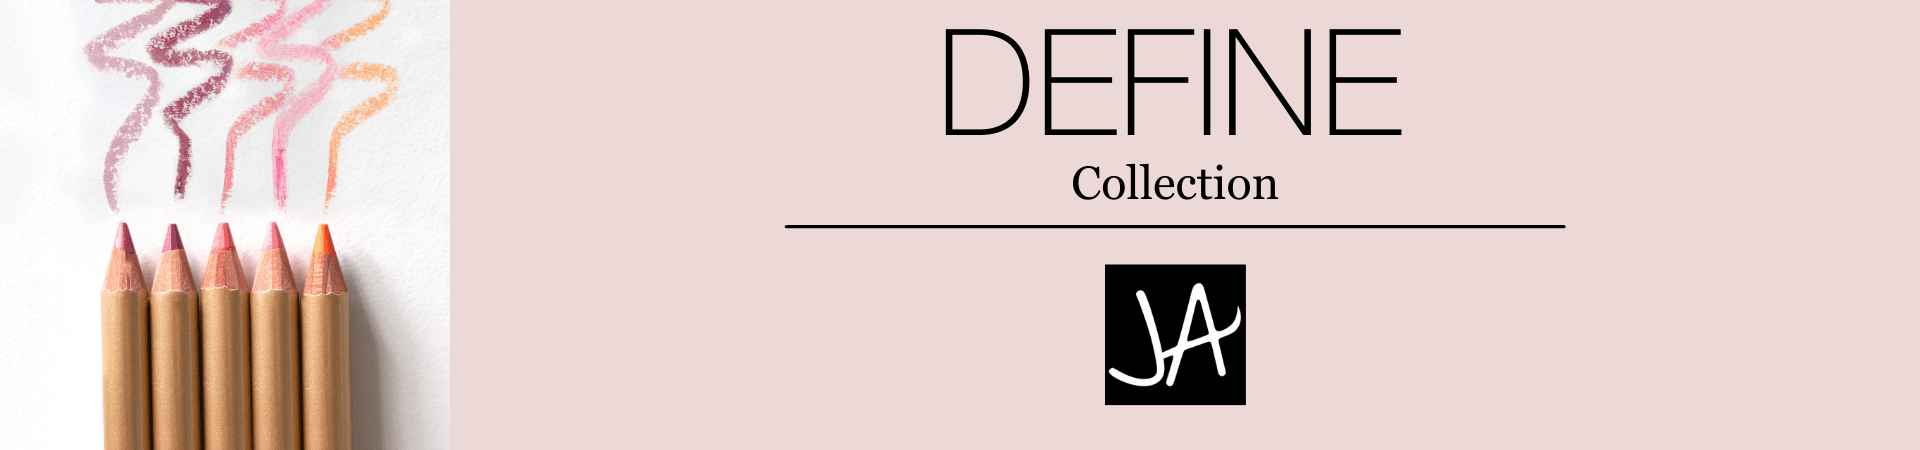 Define Collection Category Banner